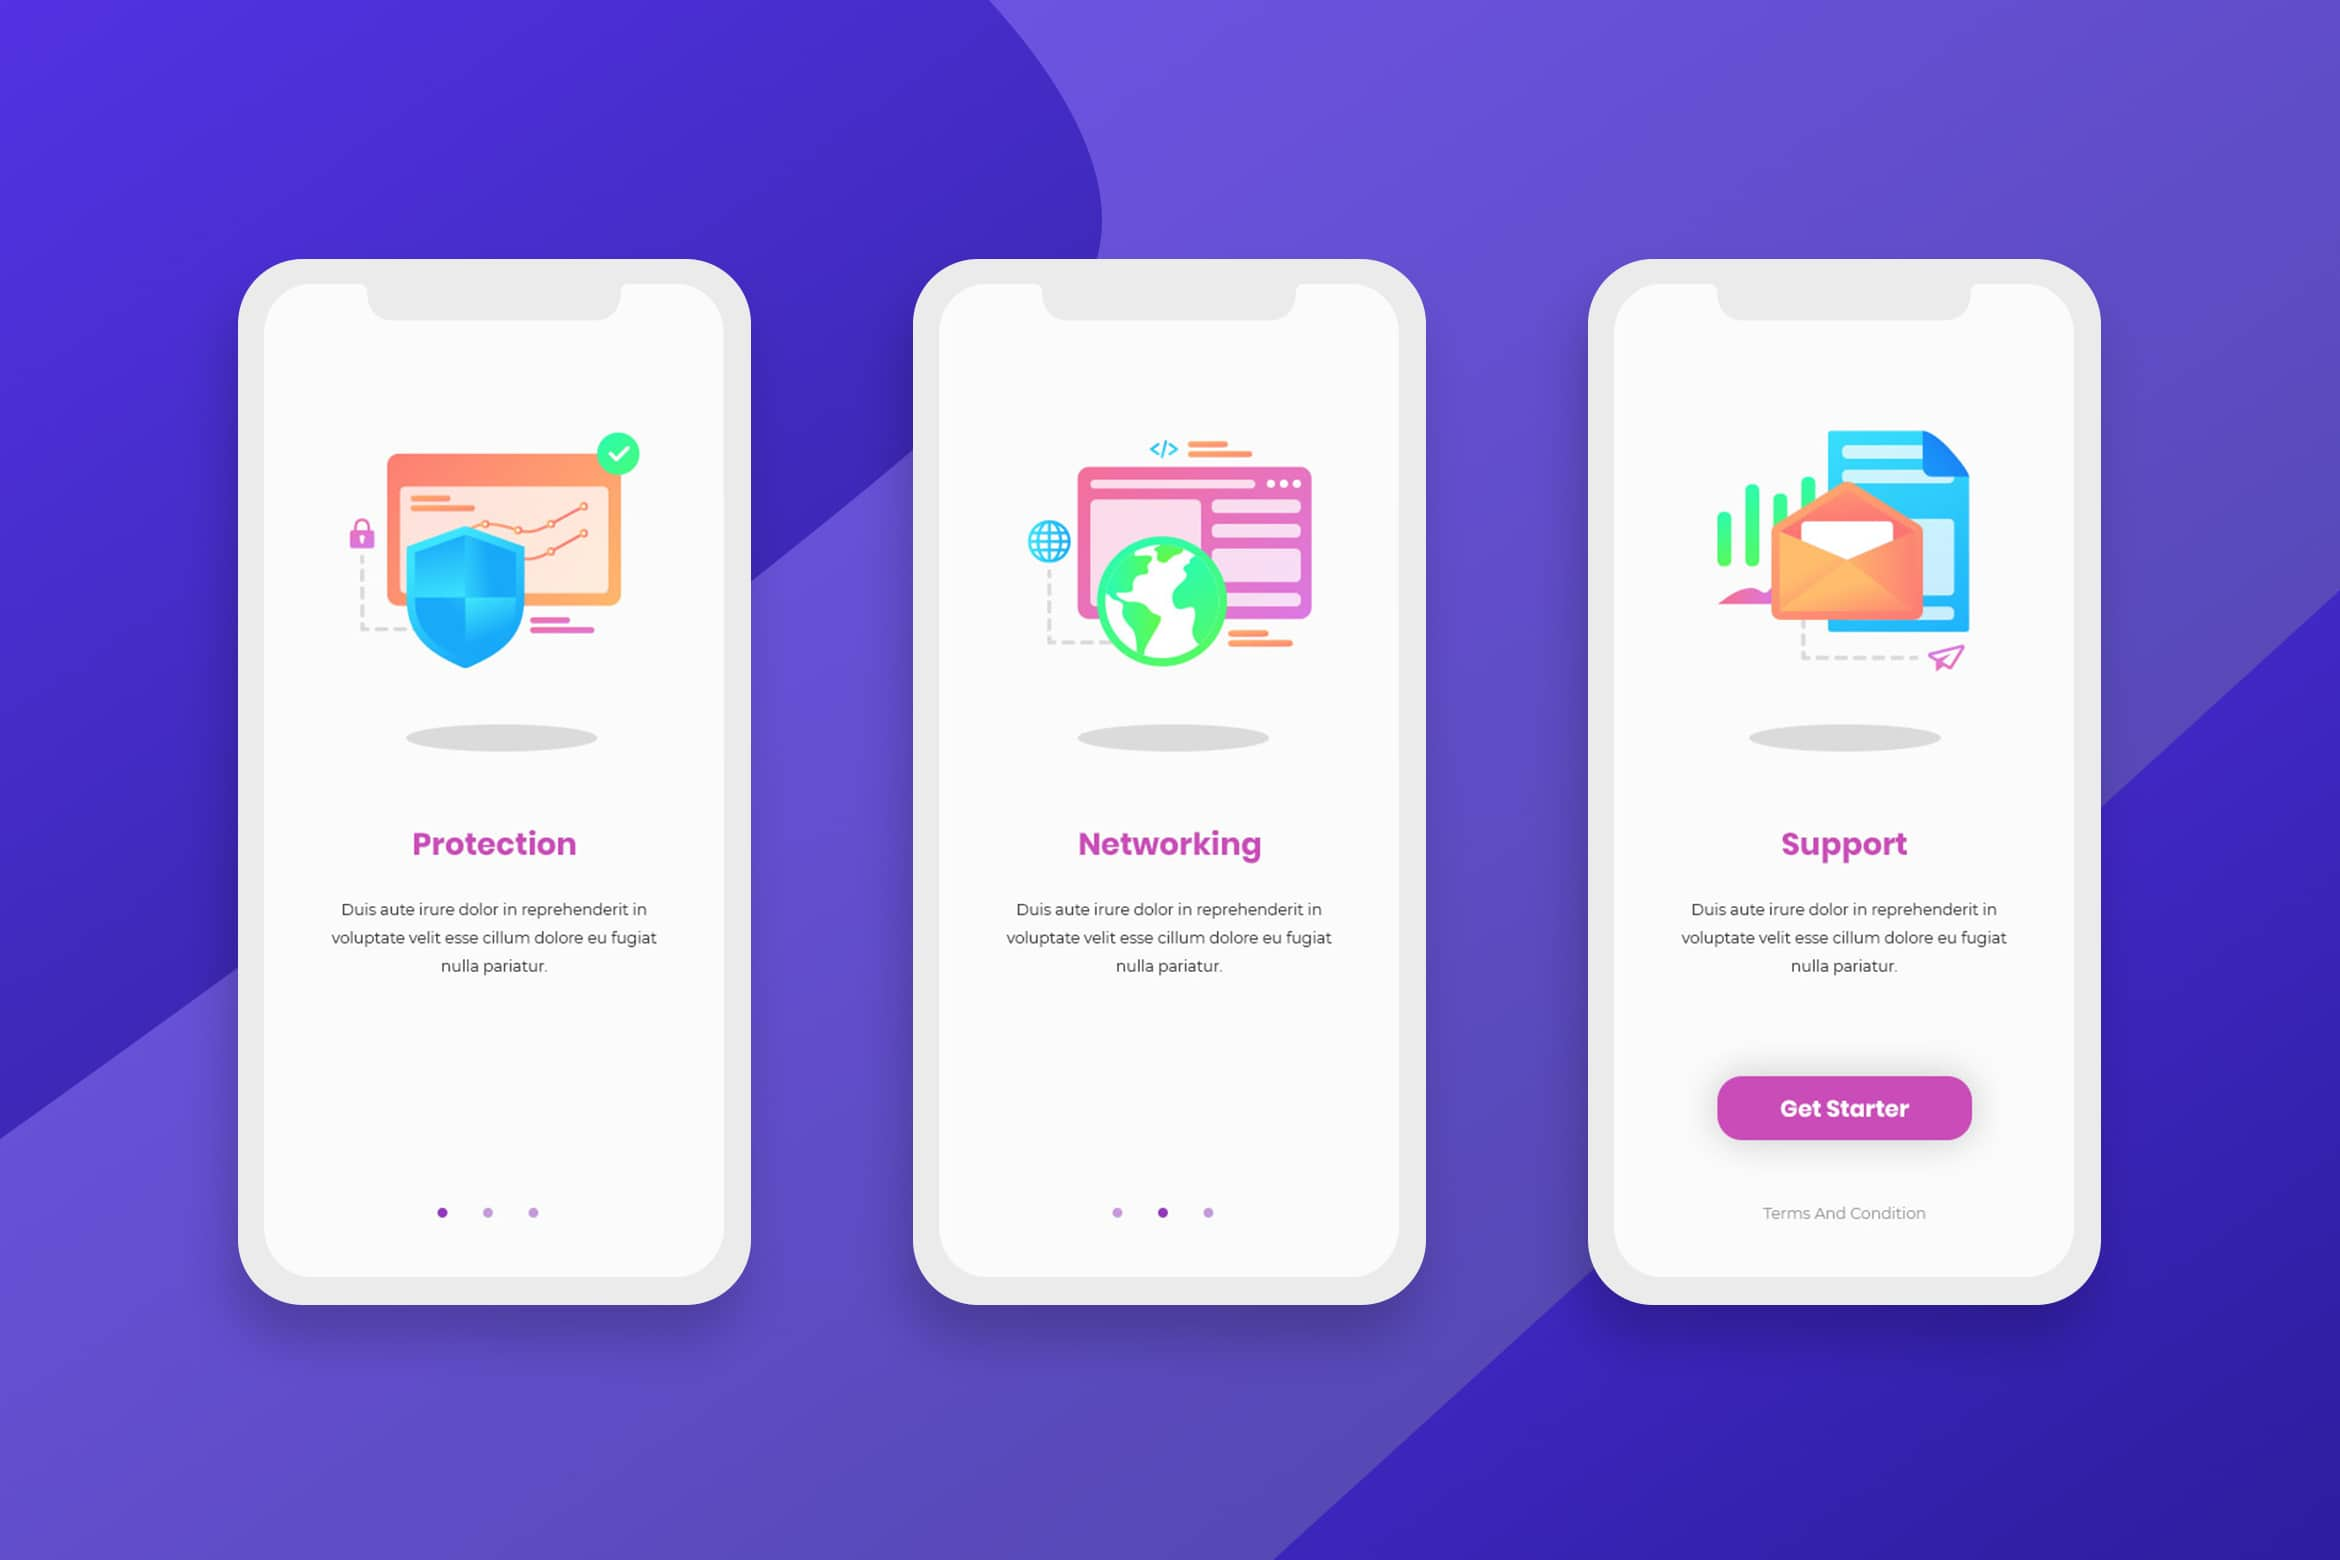 Onboarding Screens – Protection & Networking